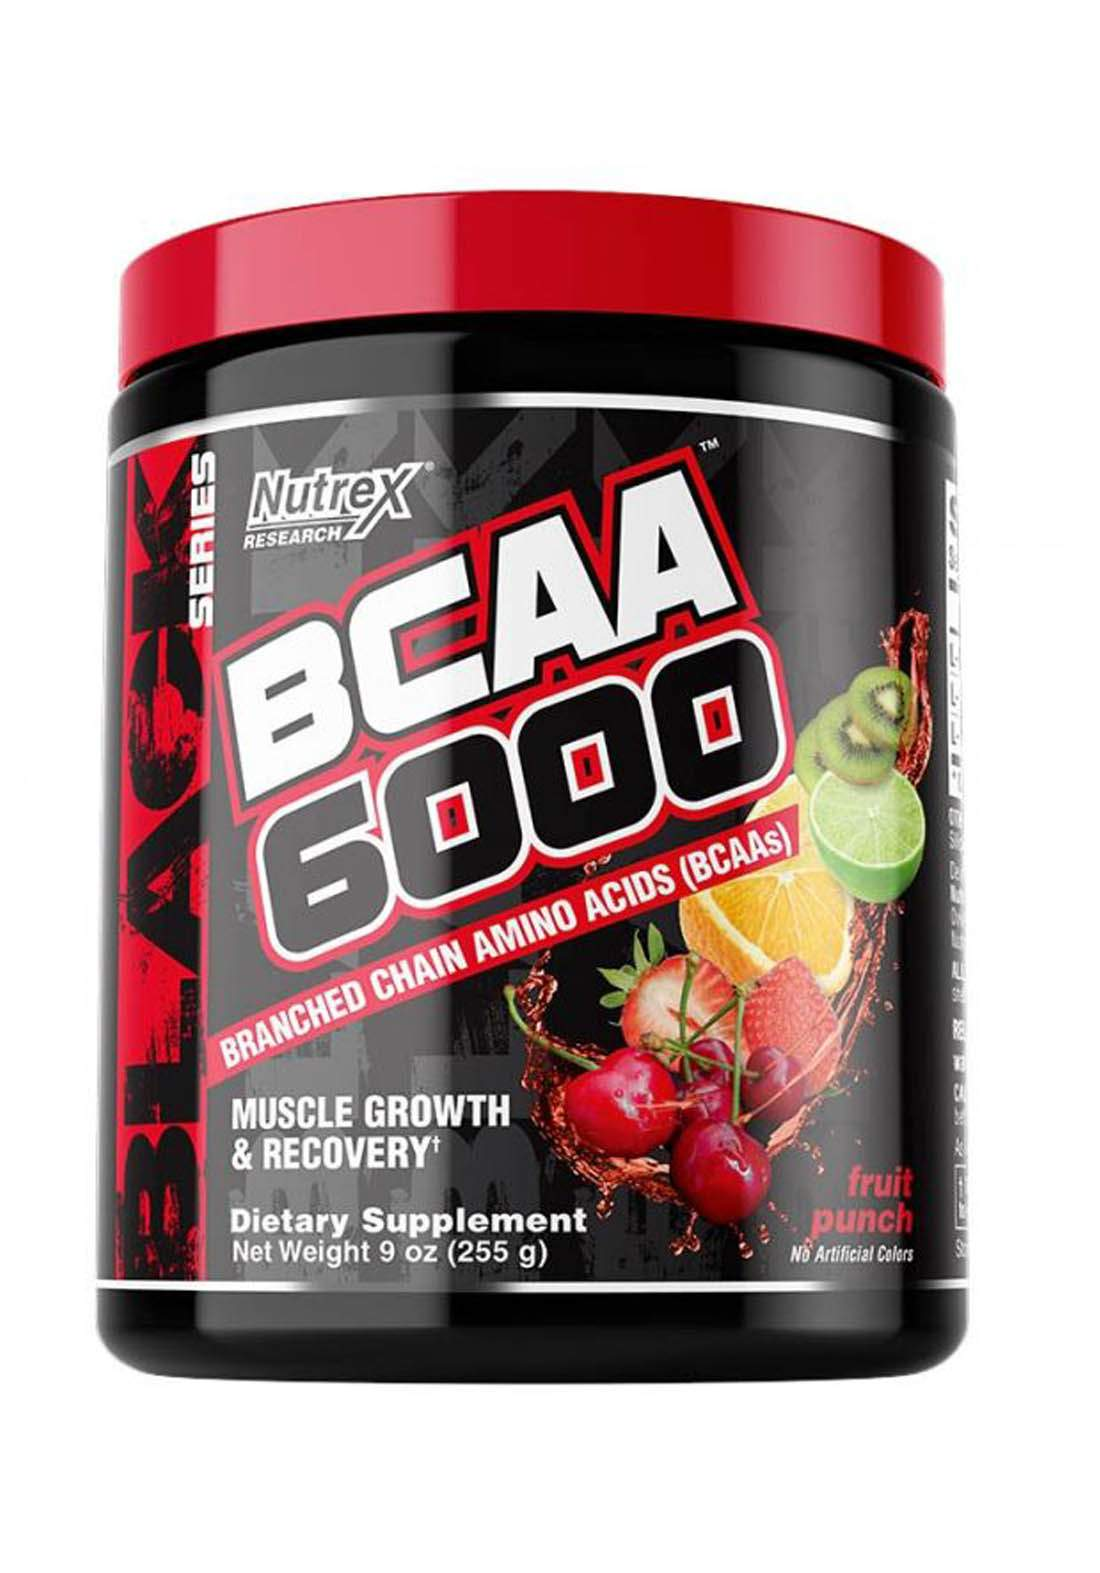 Nutrex Research BCAA 6000 Muscles Growth & Recovery Fruit Punch 30 Serv 255 Ml مكمل احماض امينية